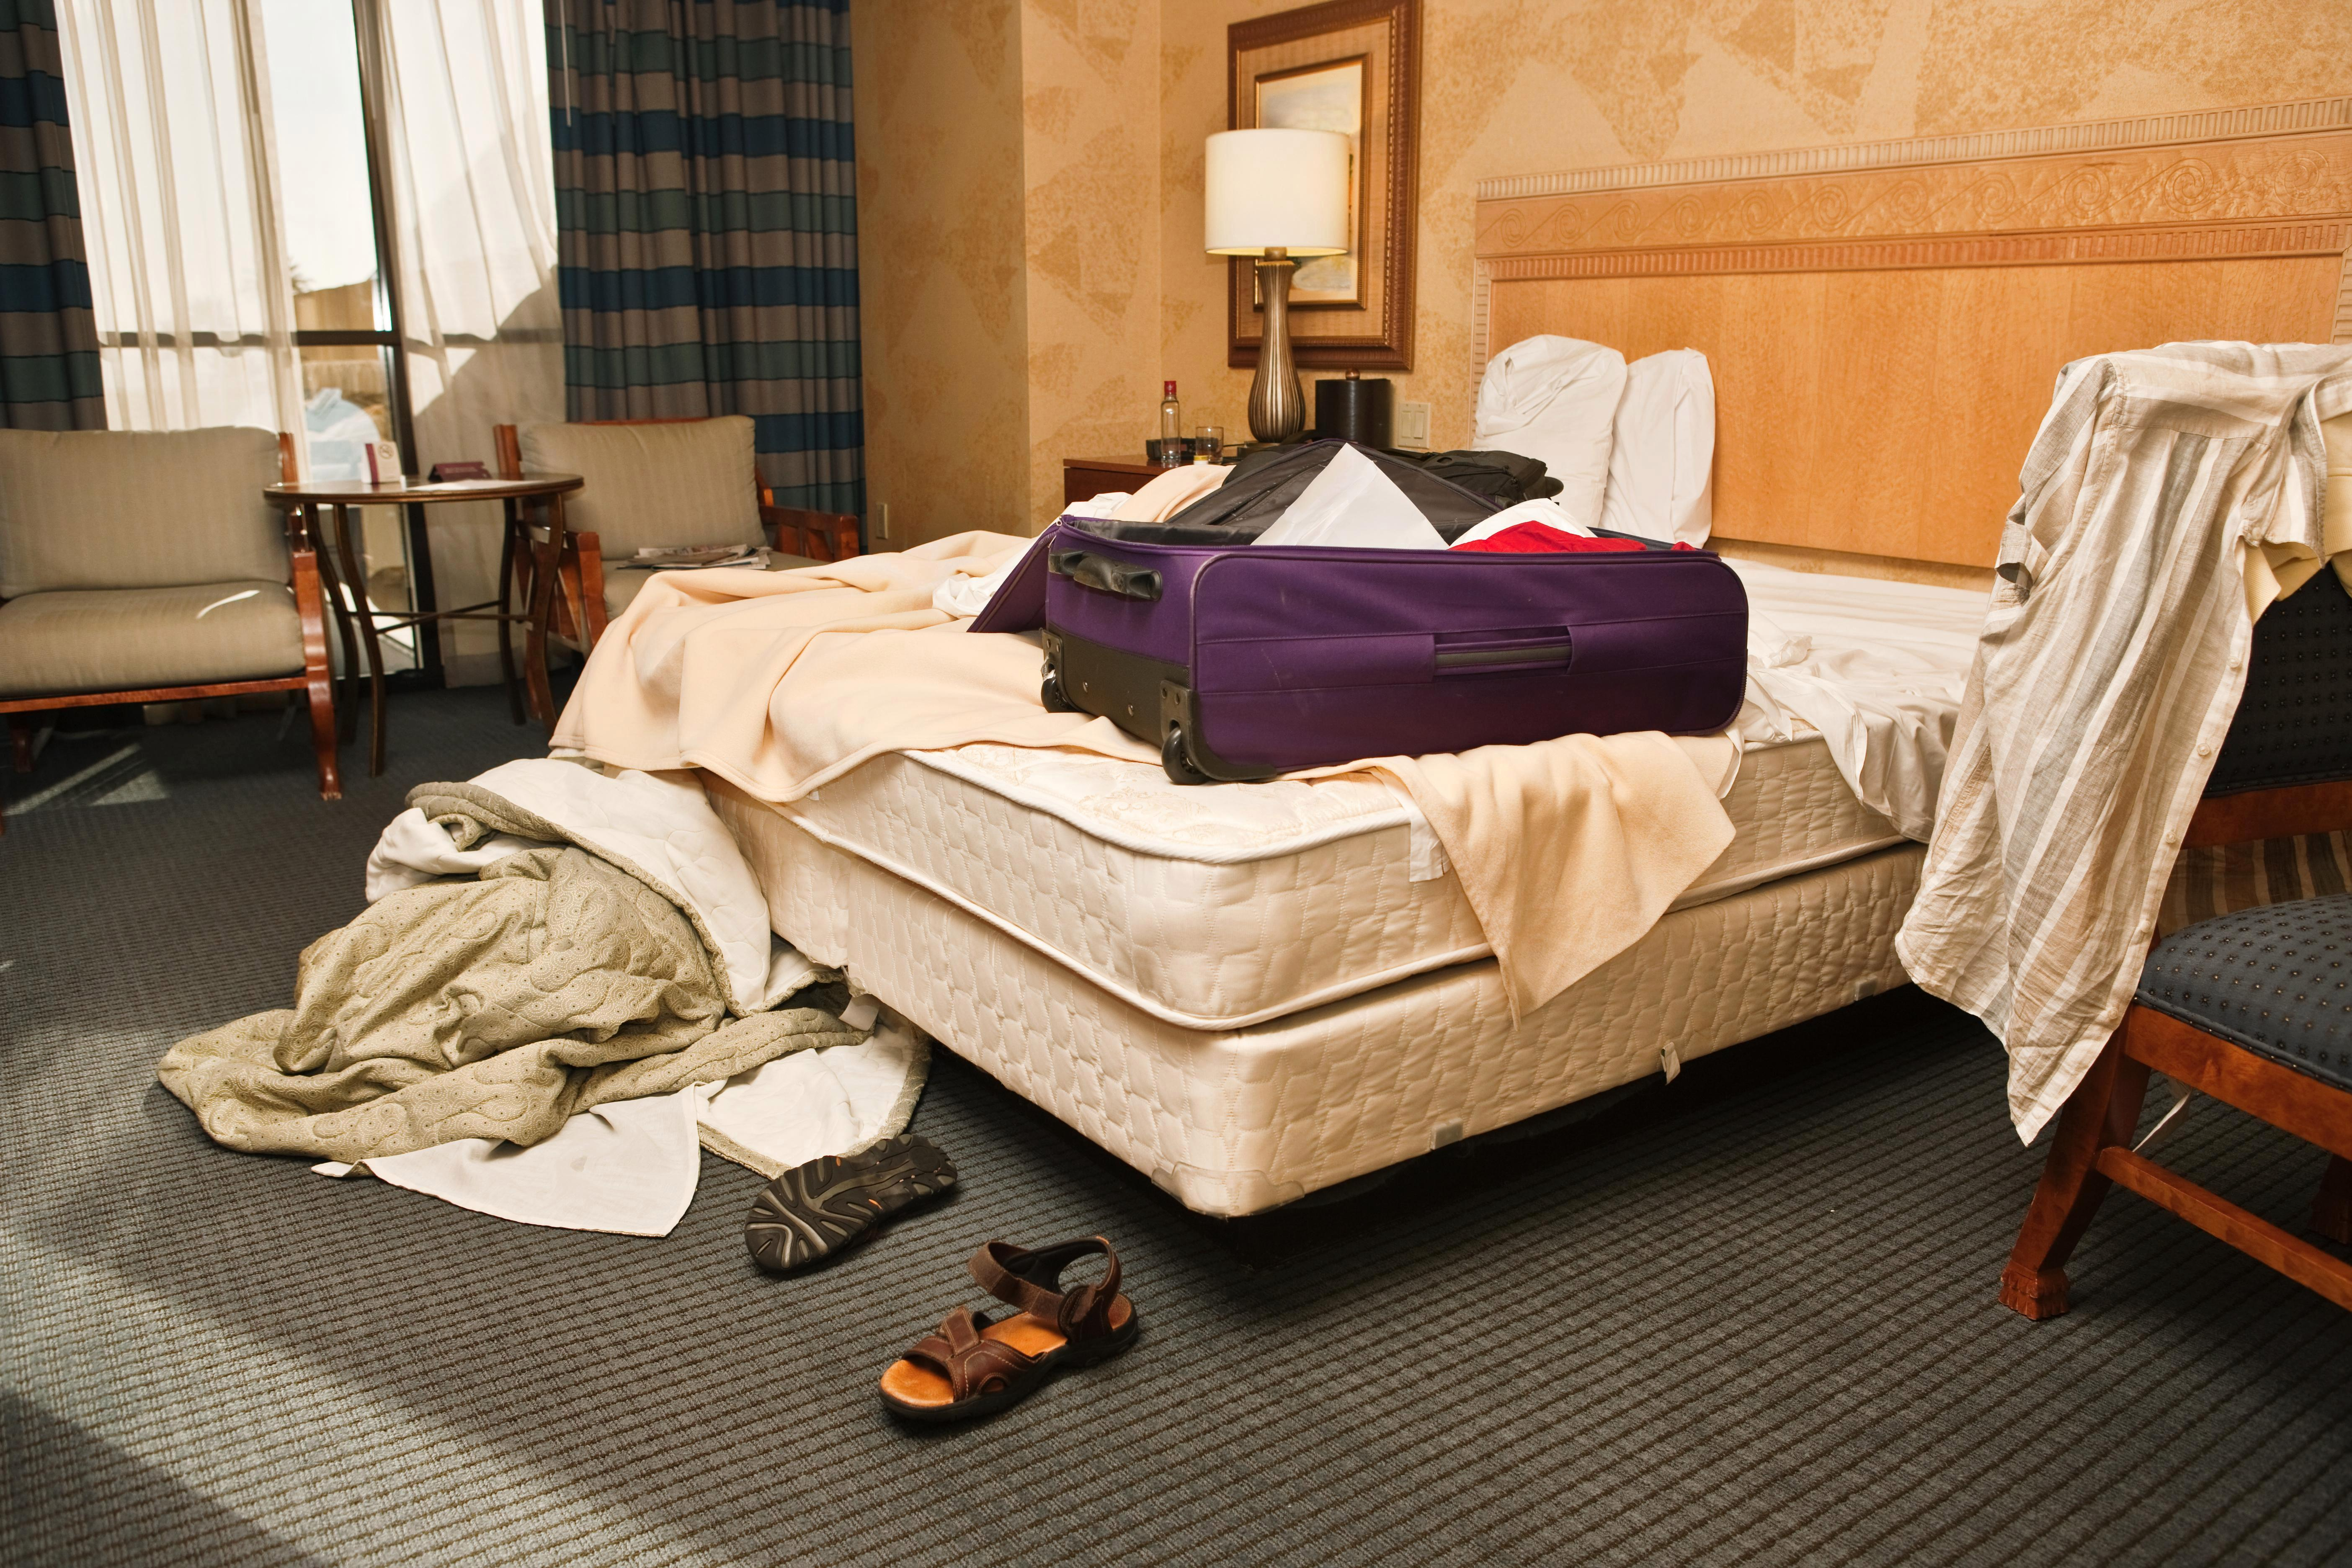 Hotel worker reveal grimmest sights he's seen in rooms, from dead